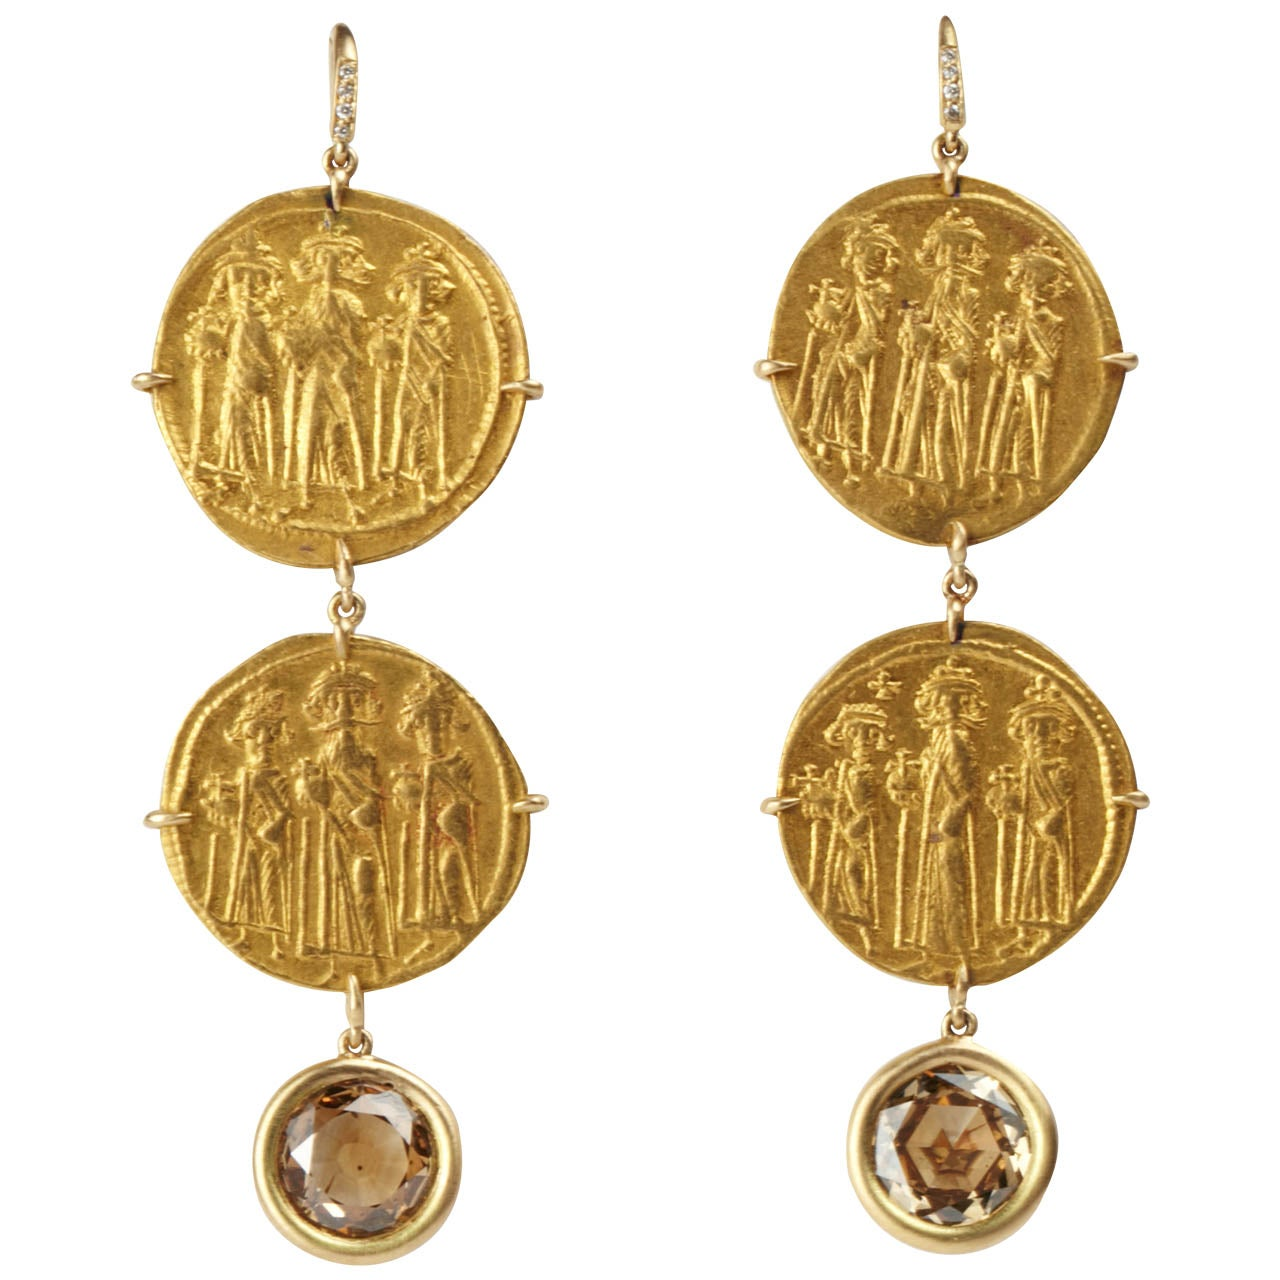 Byzantine Gold Coin Earrings At 1stdibs. Edison Pendant. 2000 Engagement Rings. Stretch Band Bracelet. Jeulia Engagement Rings. Jewish Jewelry. Hazy Diamond. Edwardian Style Engagement Rings. Funky Jewellery